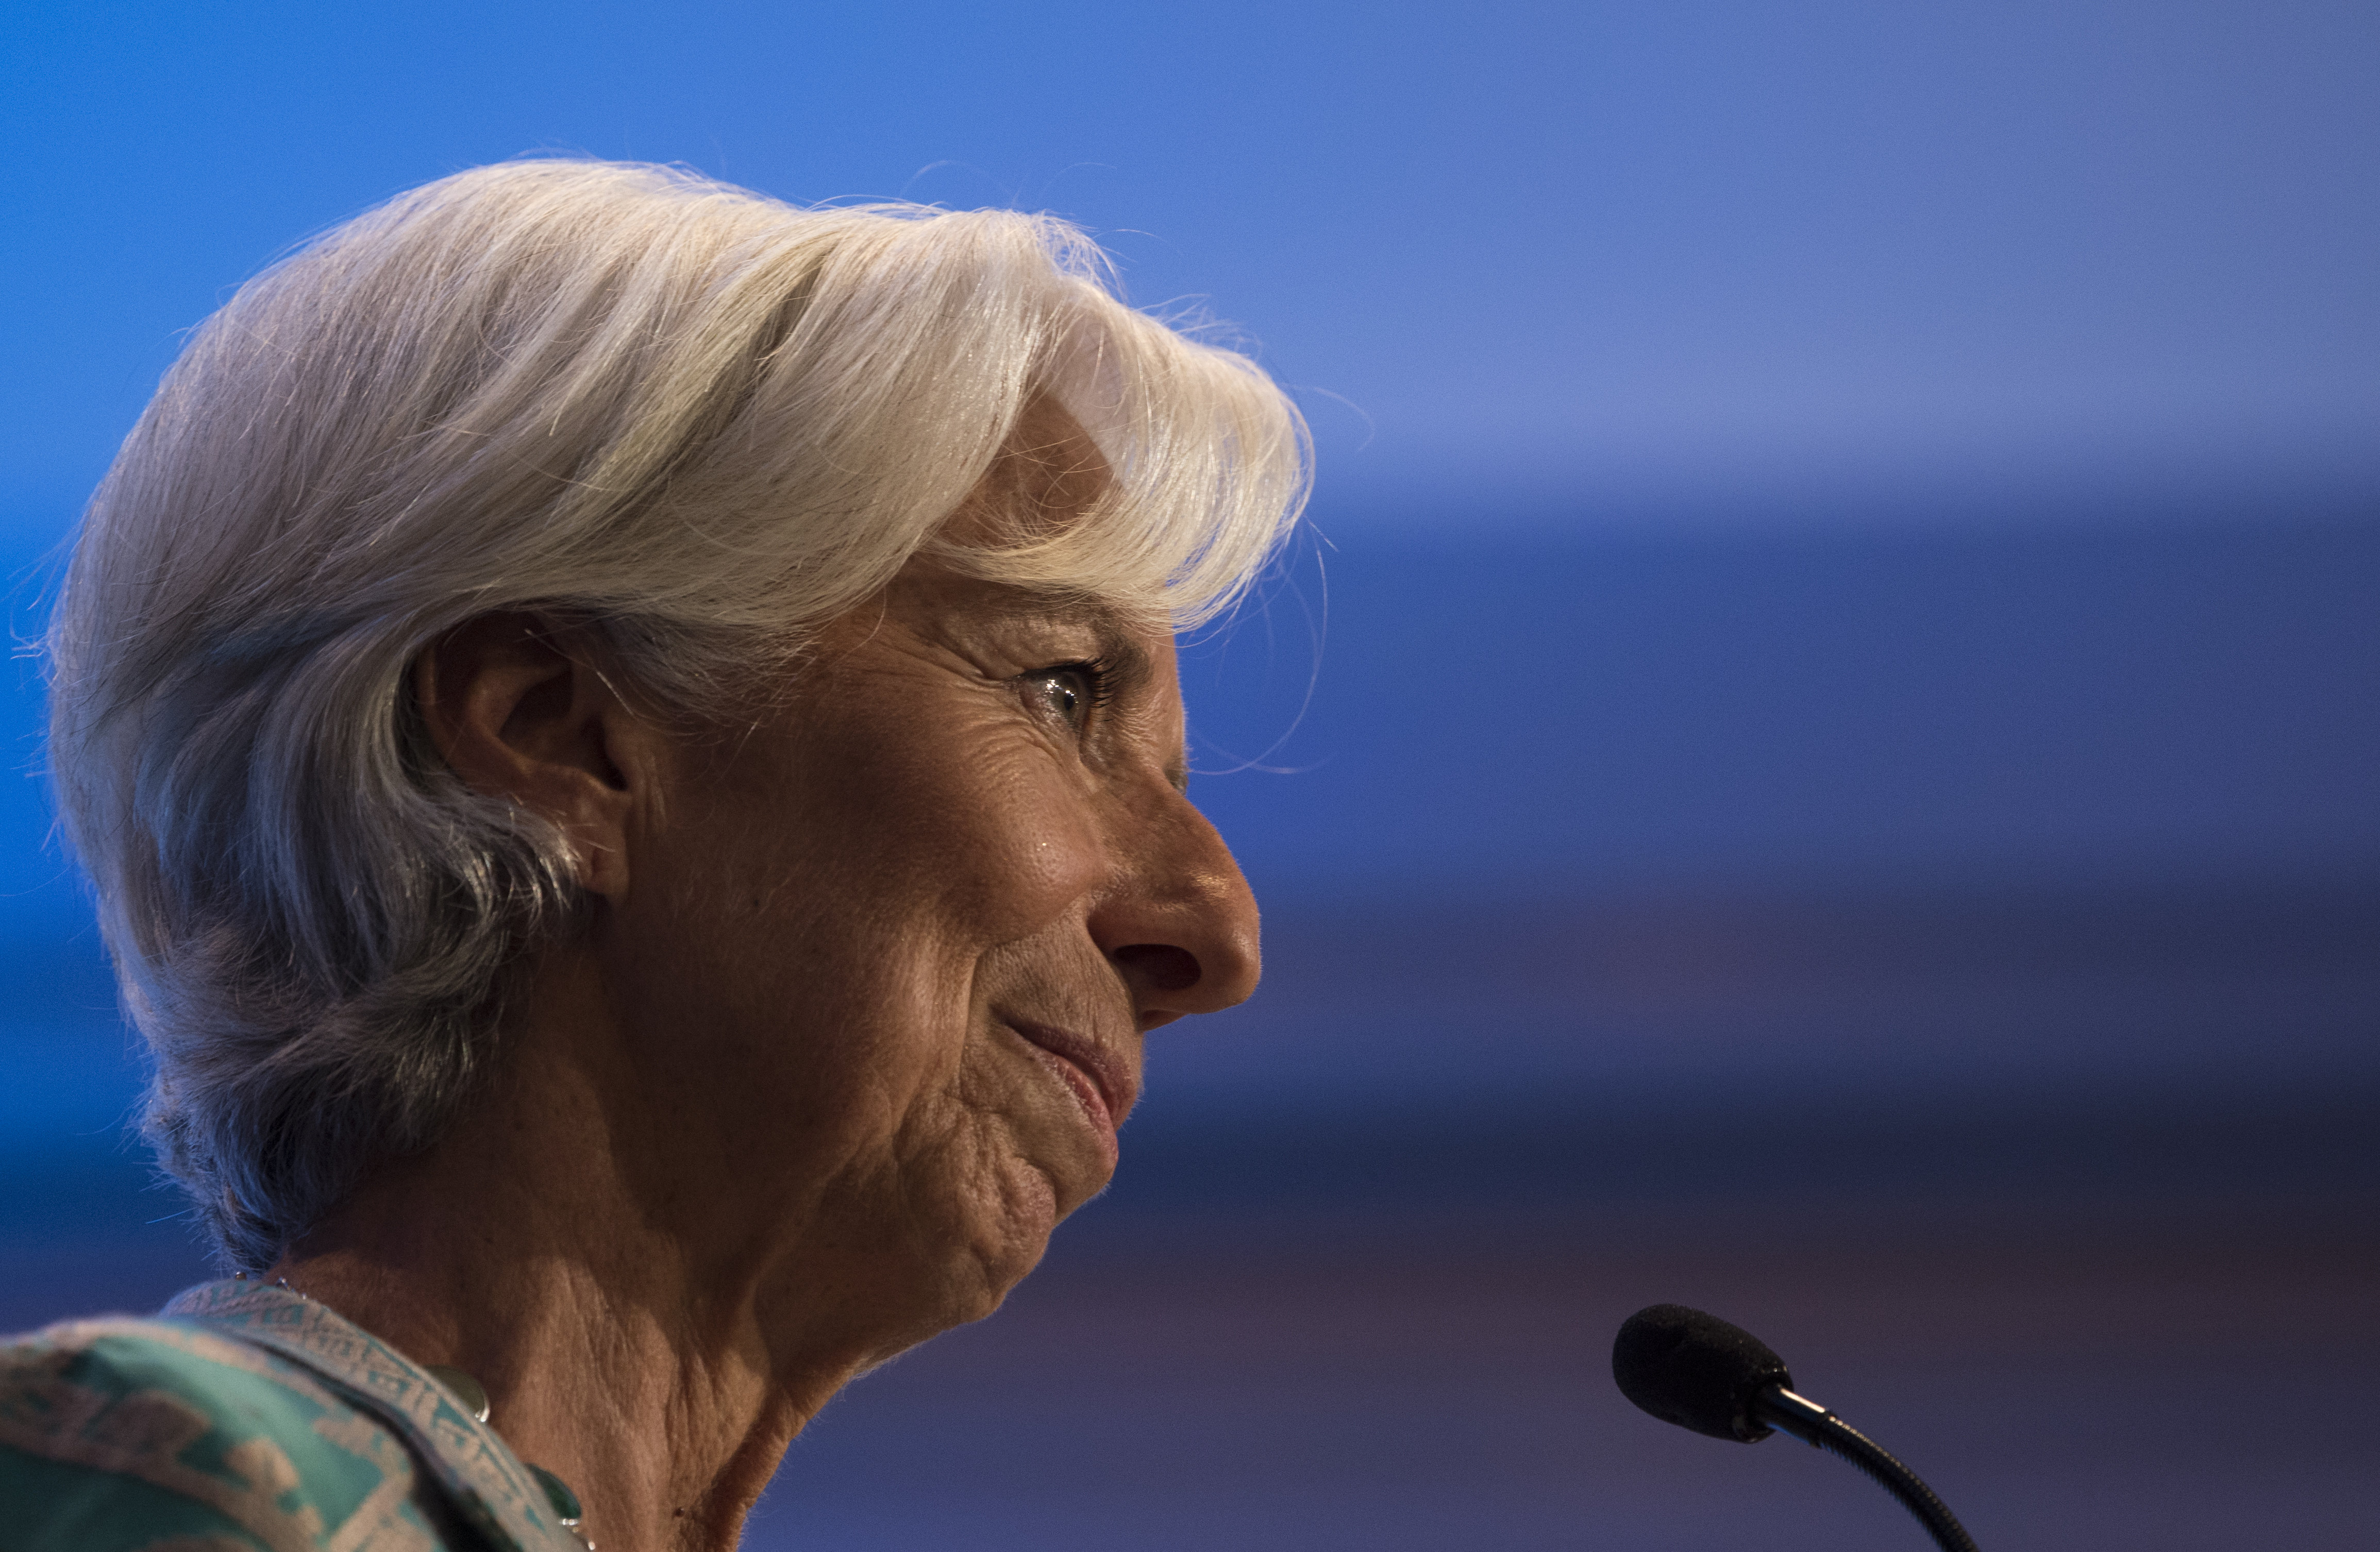 Trade conflict standoff poses risk to developing world, IMF chief warns